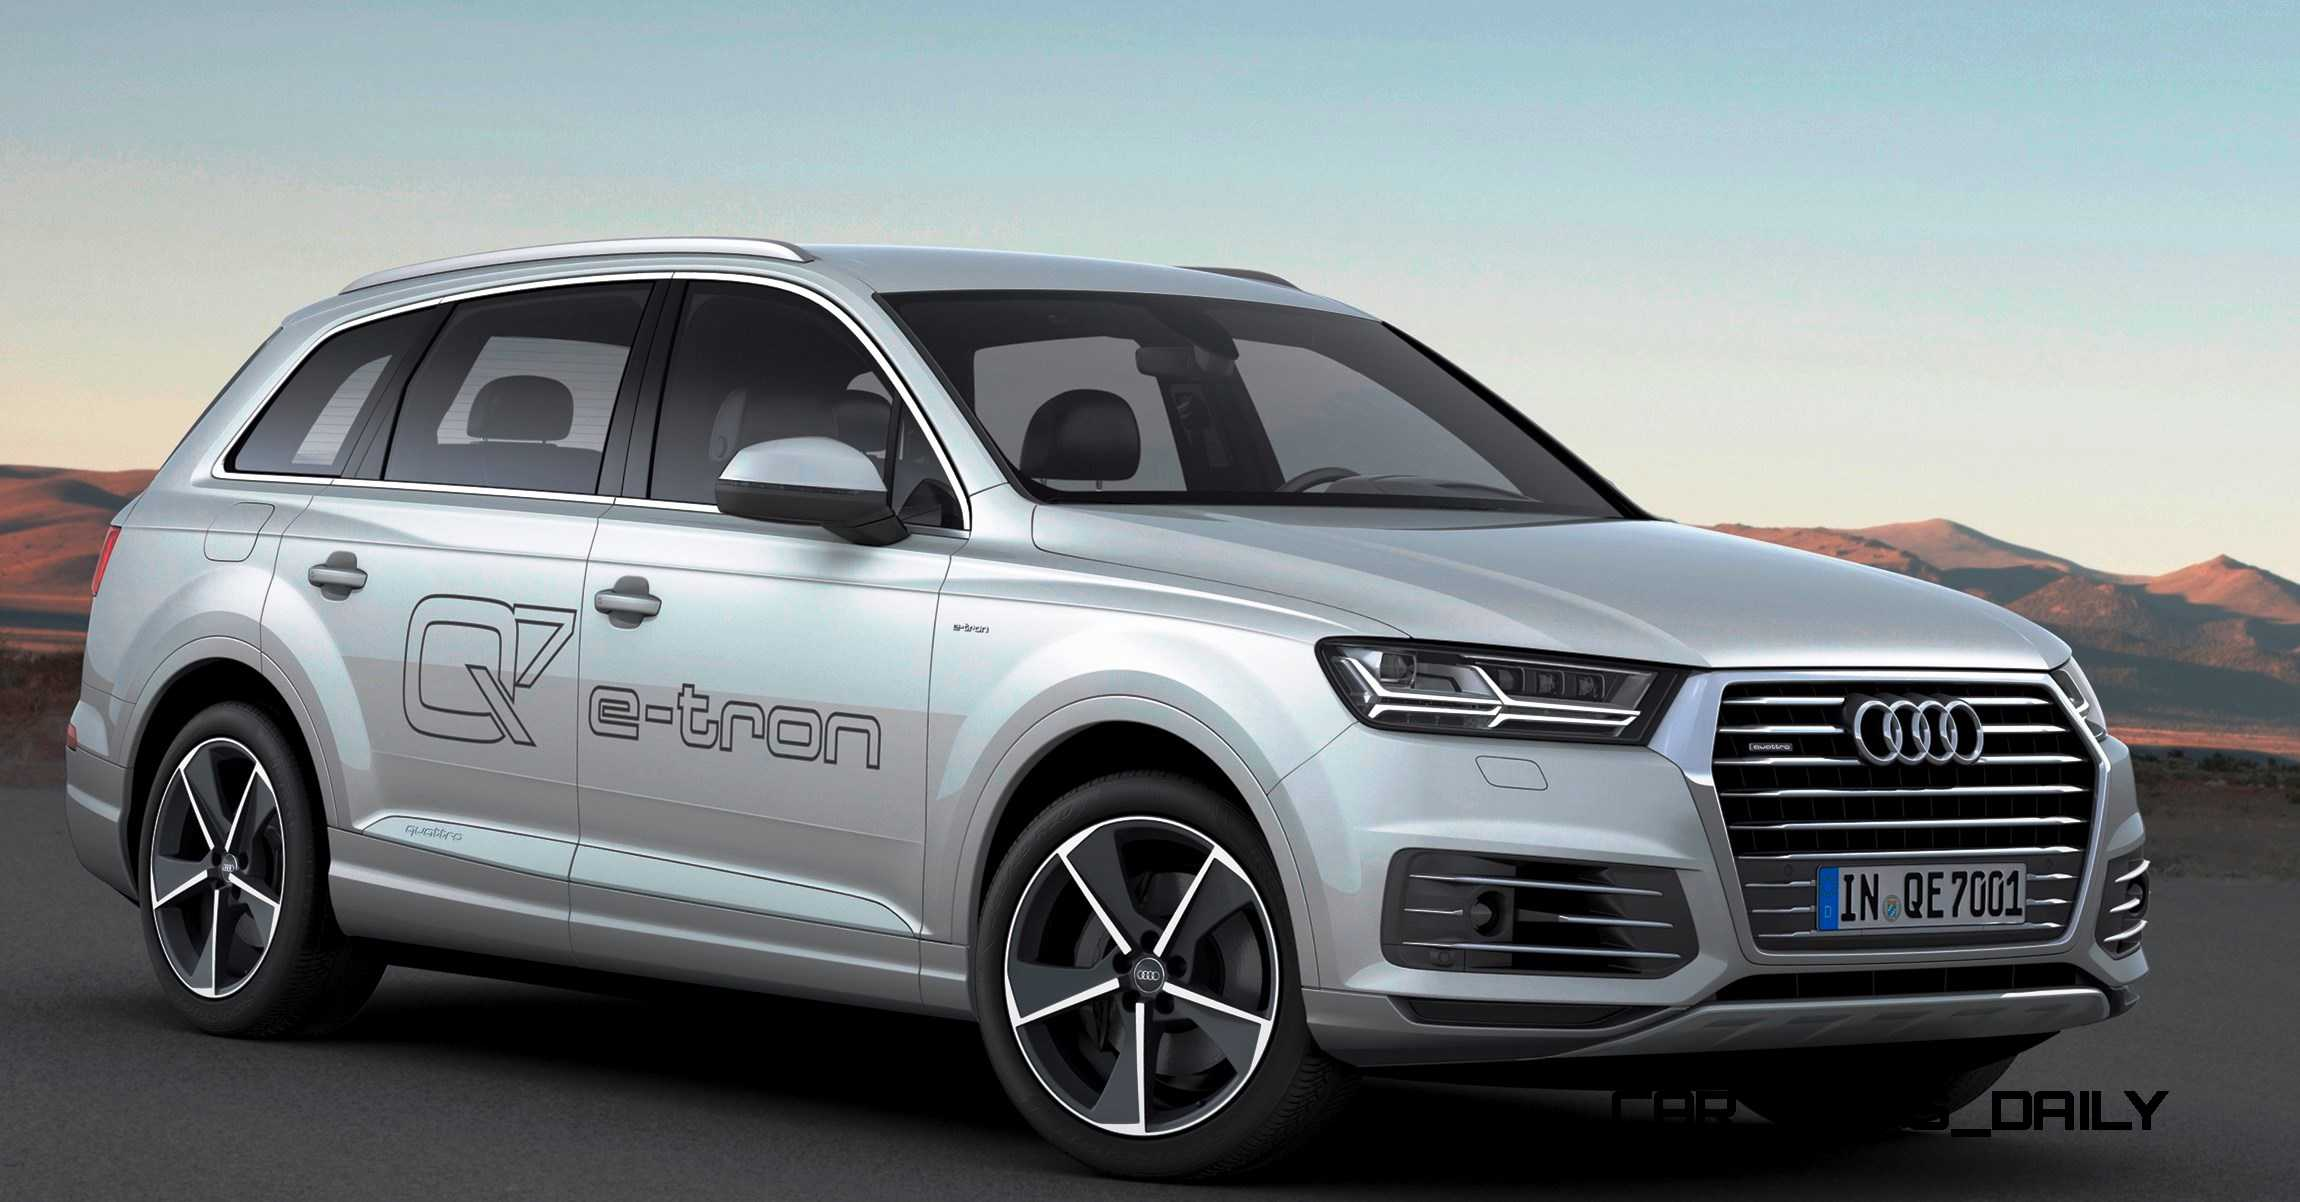 2016 audi q7 e tron 3 0 tdi quattro. Black Bedroom Furniture Sets. Home Design Ideas